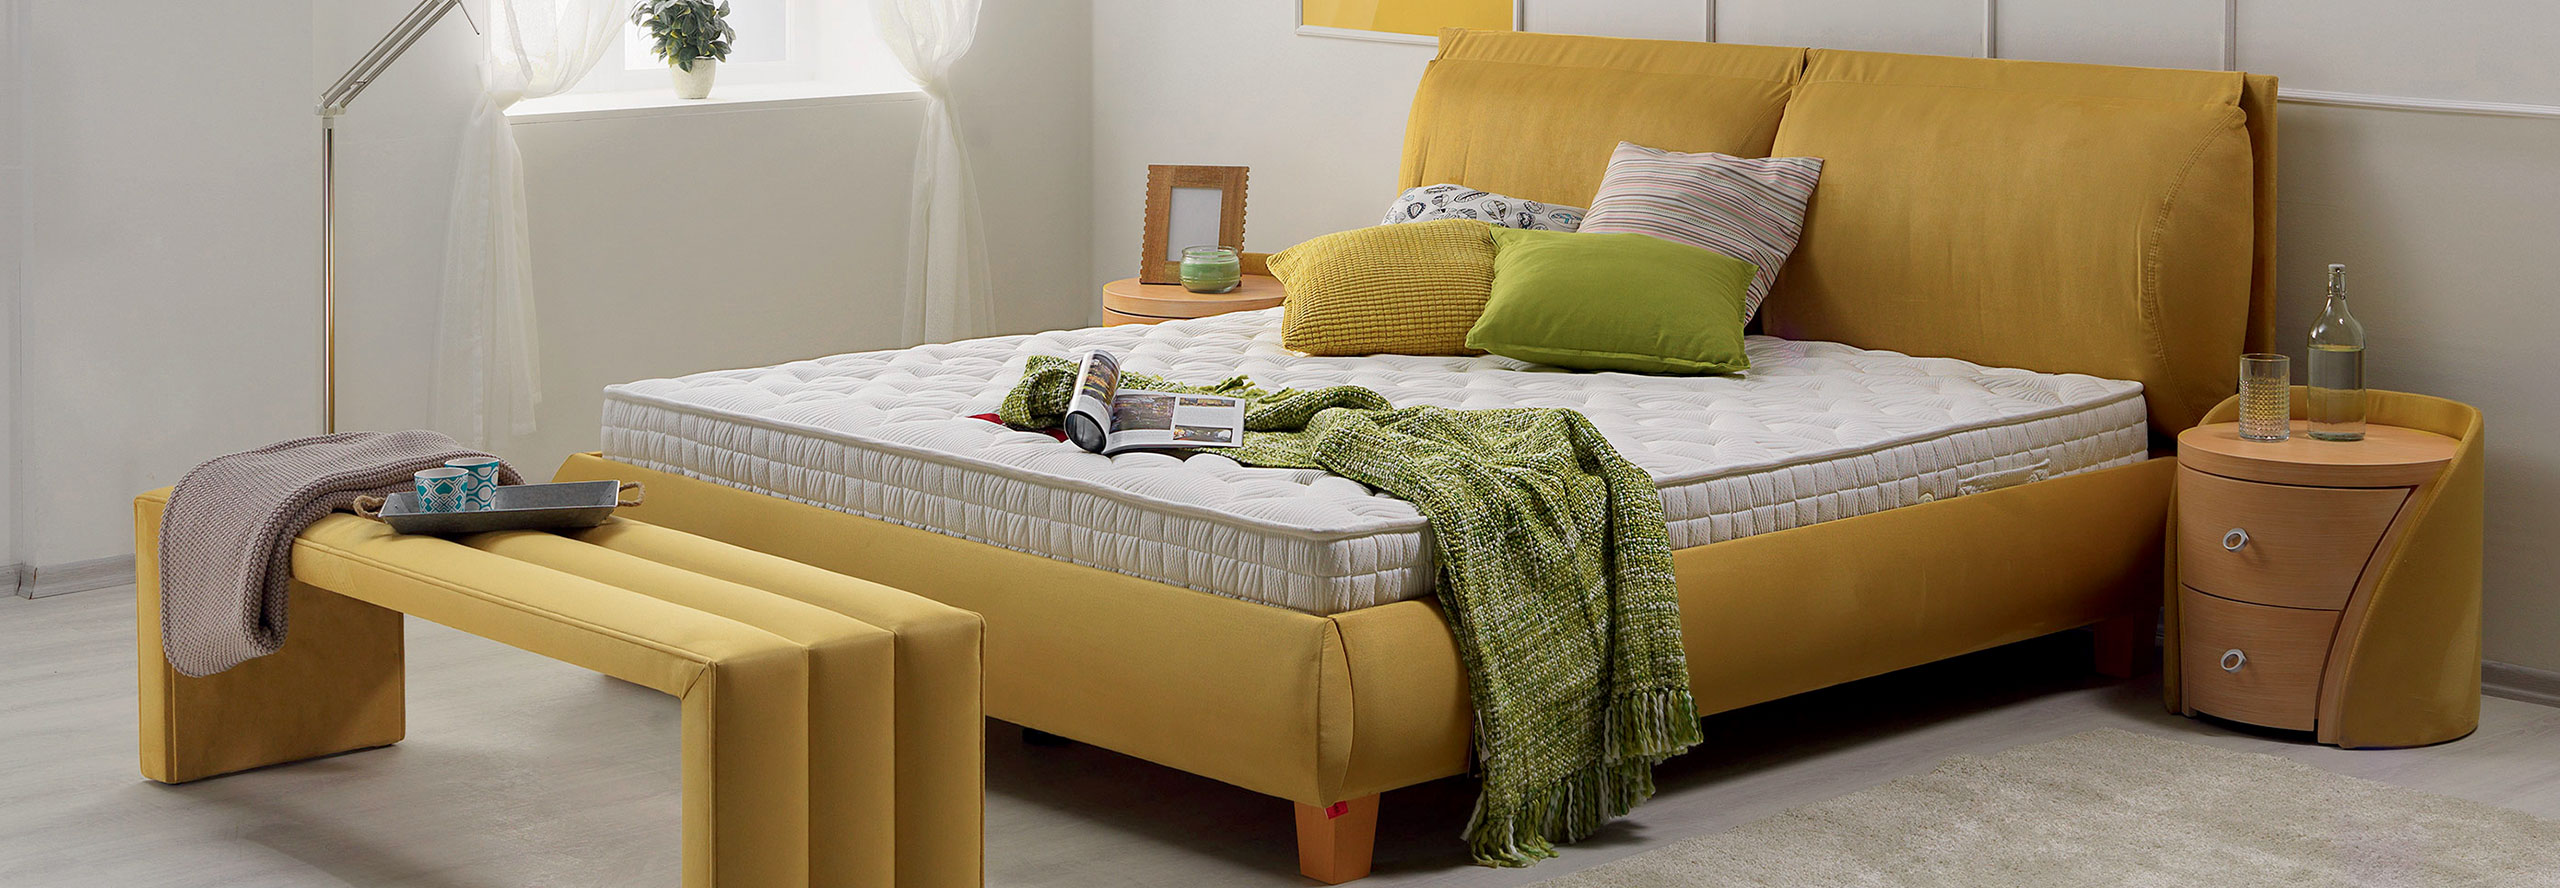 chambre moderne jaune moutarde